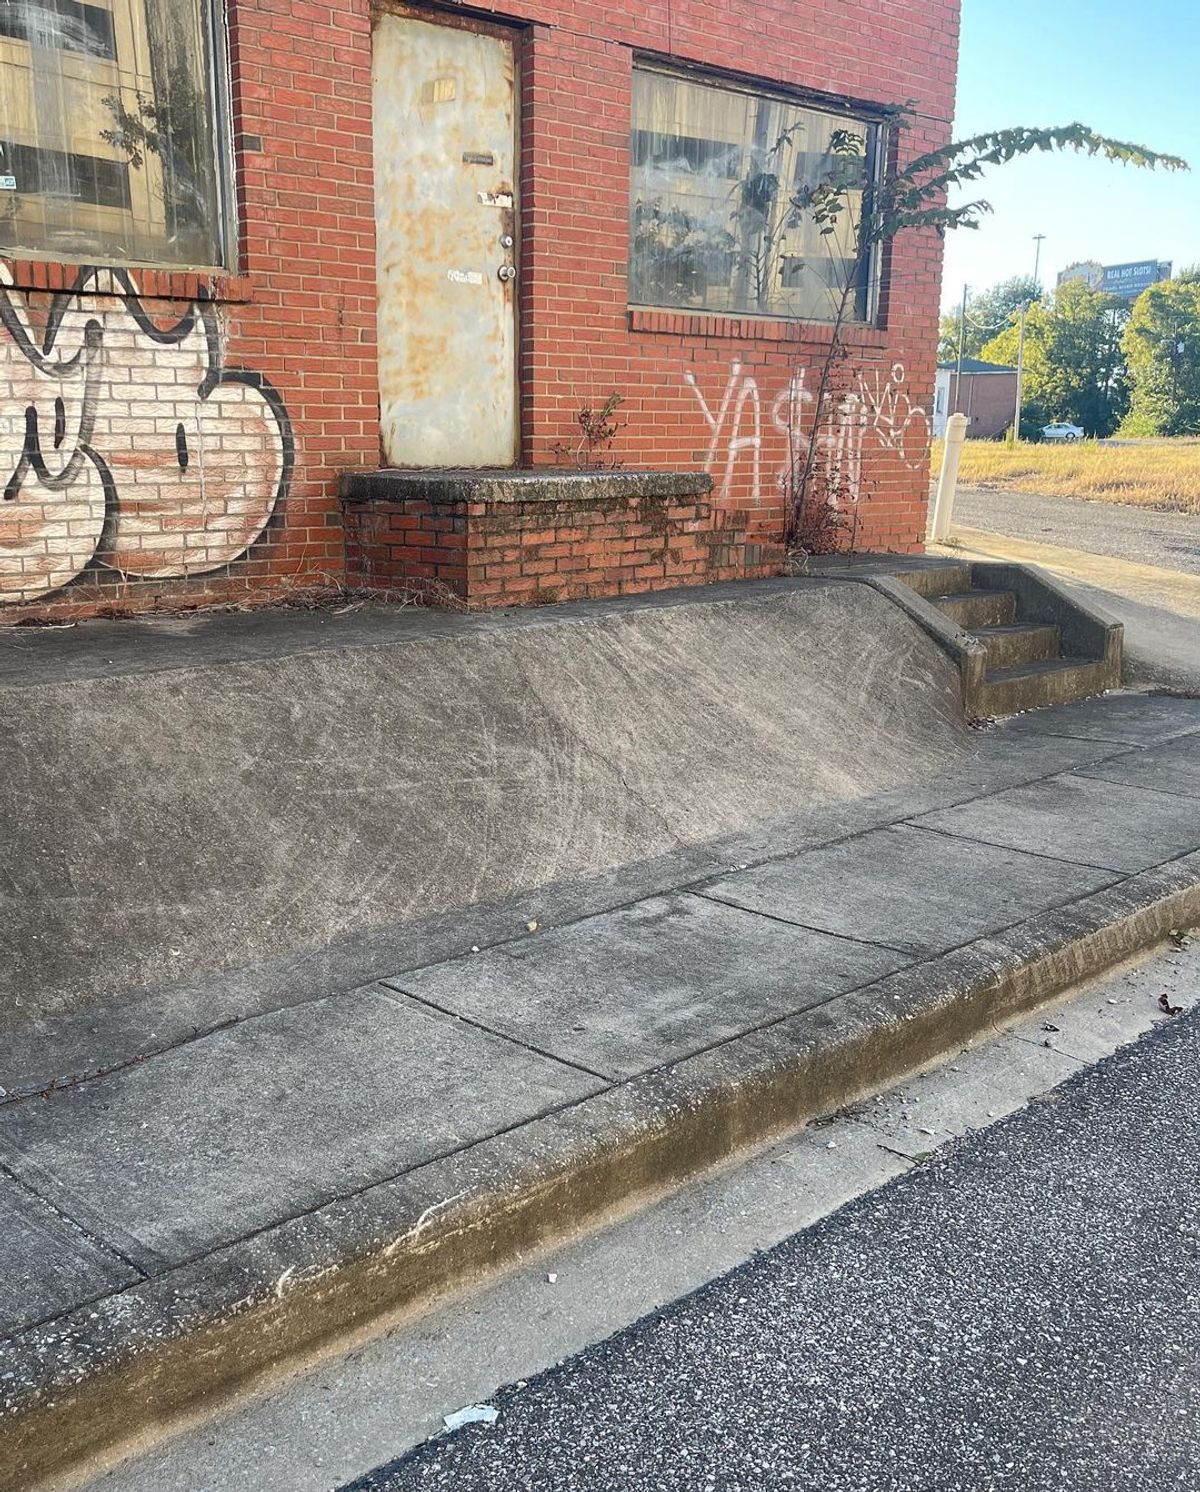 Image for skate spot 12th St - Banked Gap Over Stairs